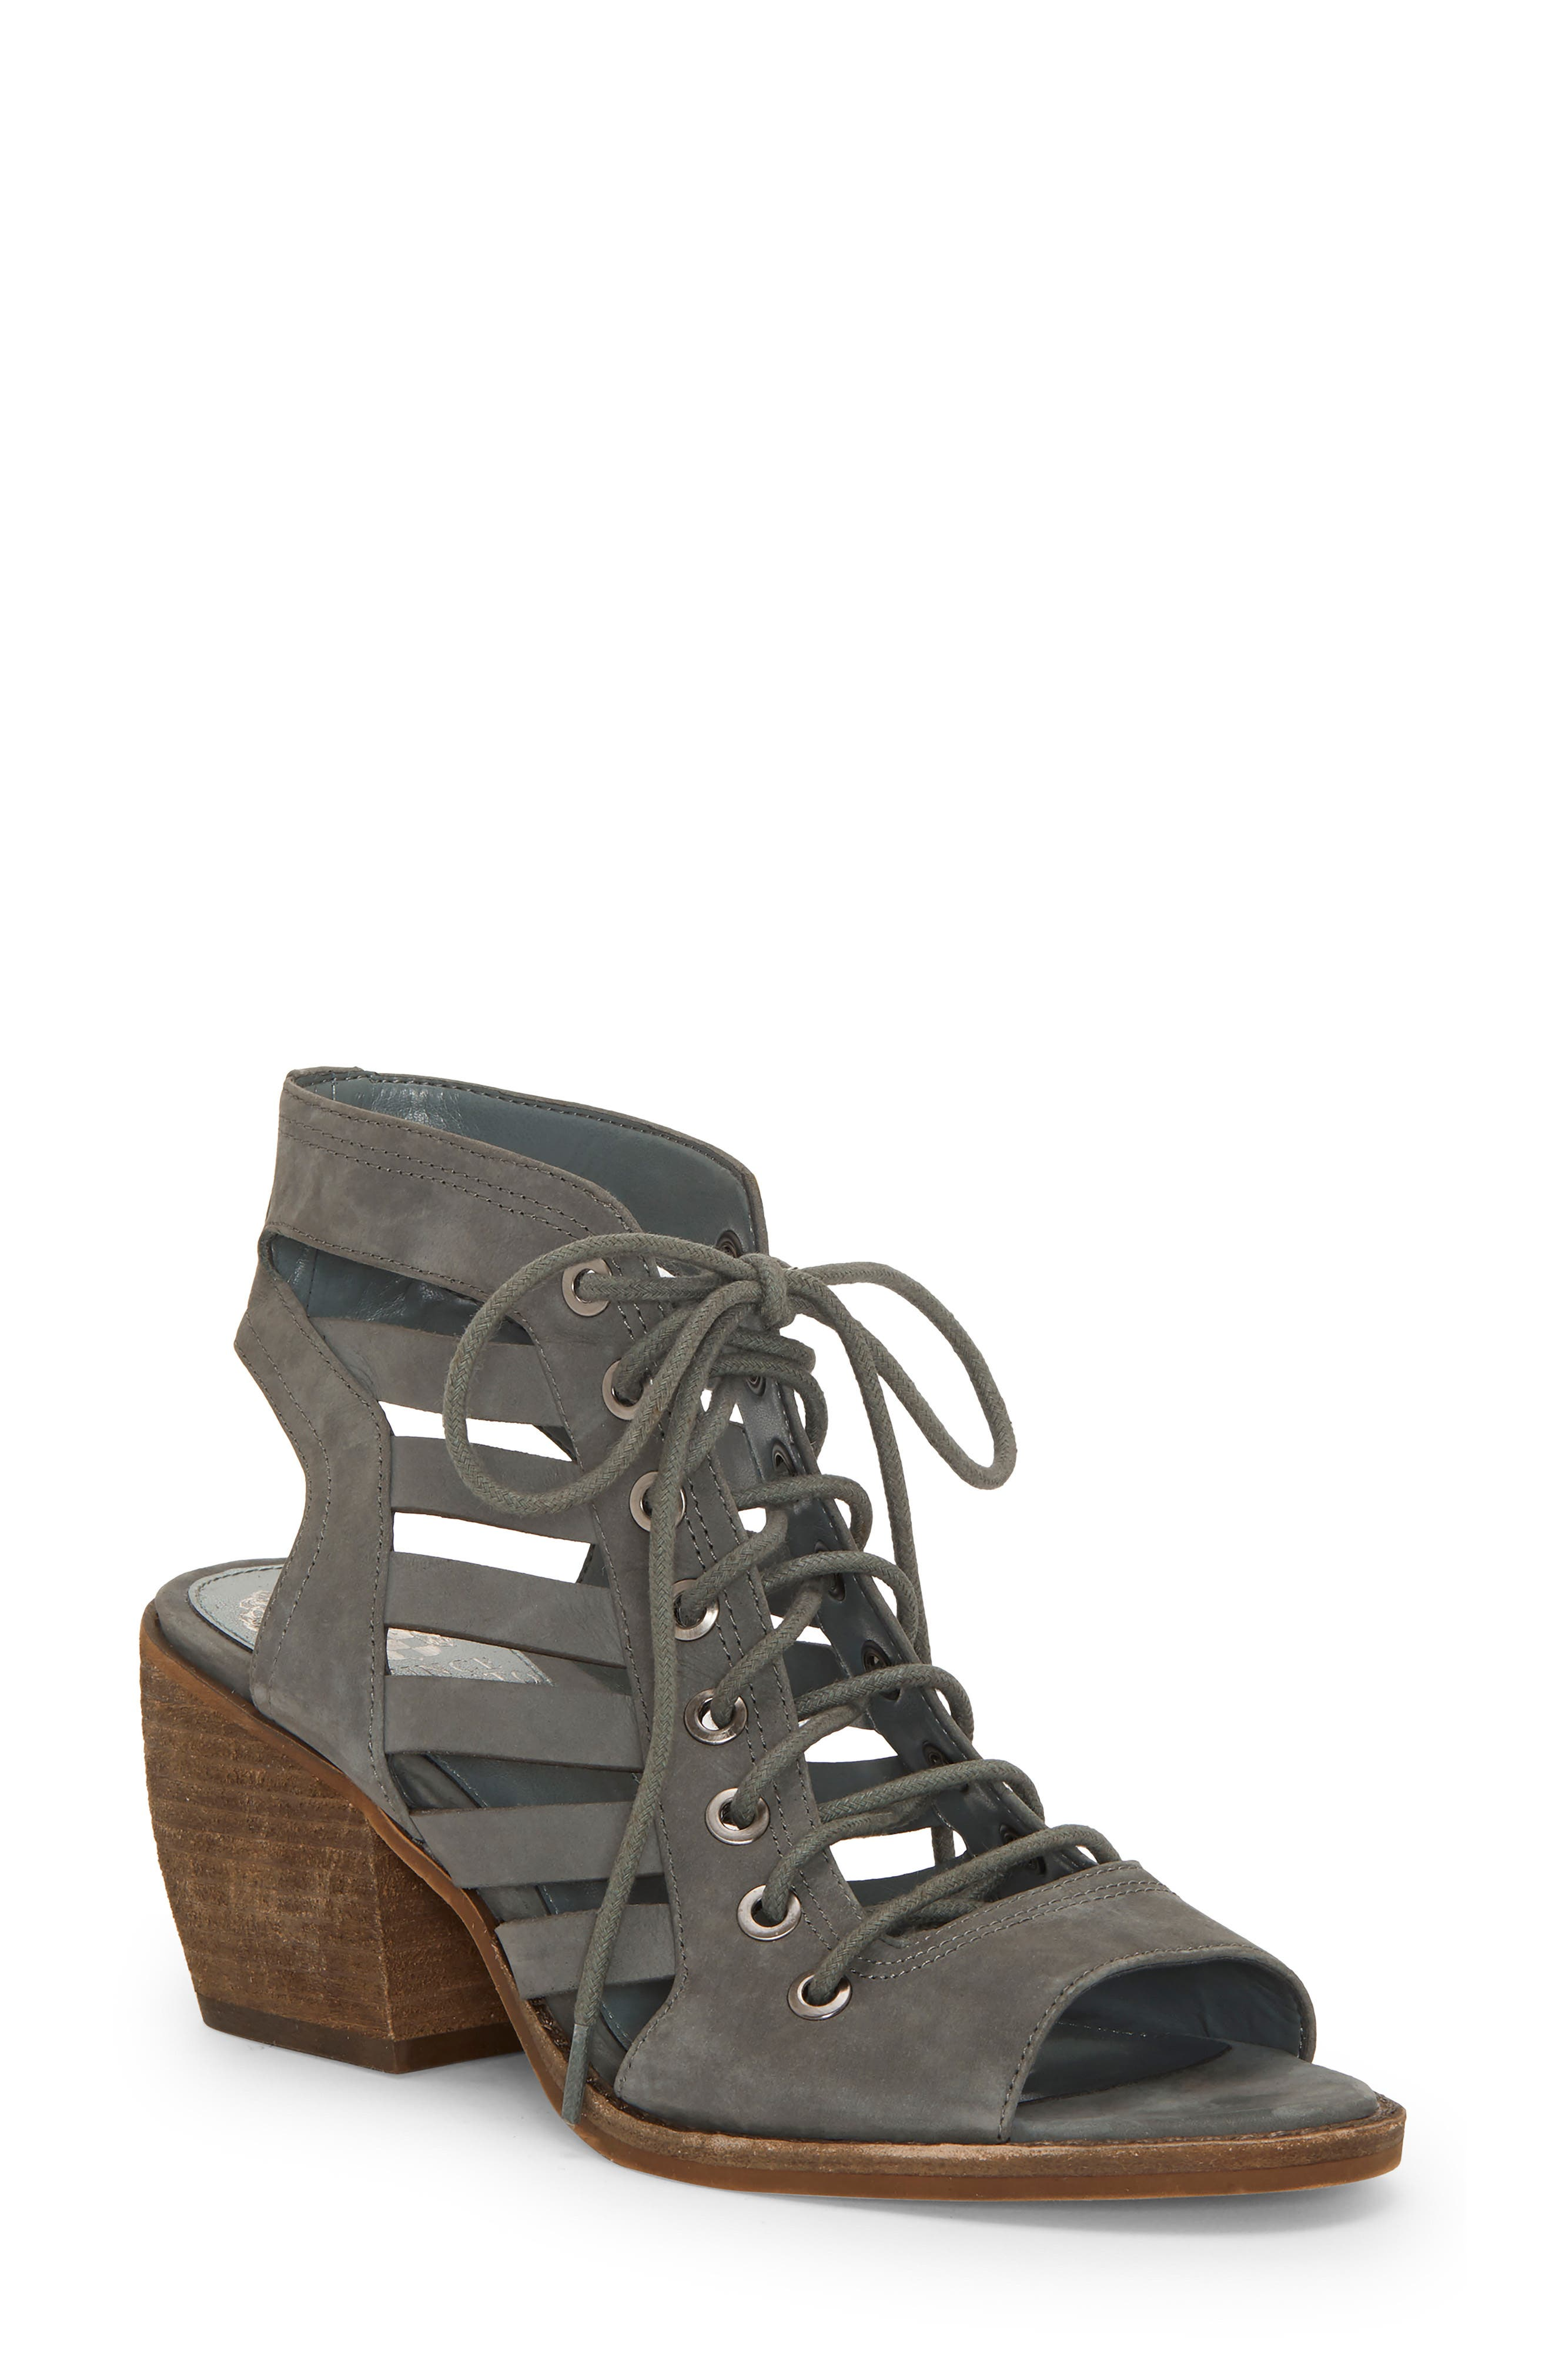 Vince Camuto Chesten Lace-Up Sandal, Grey